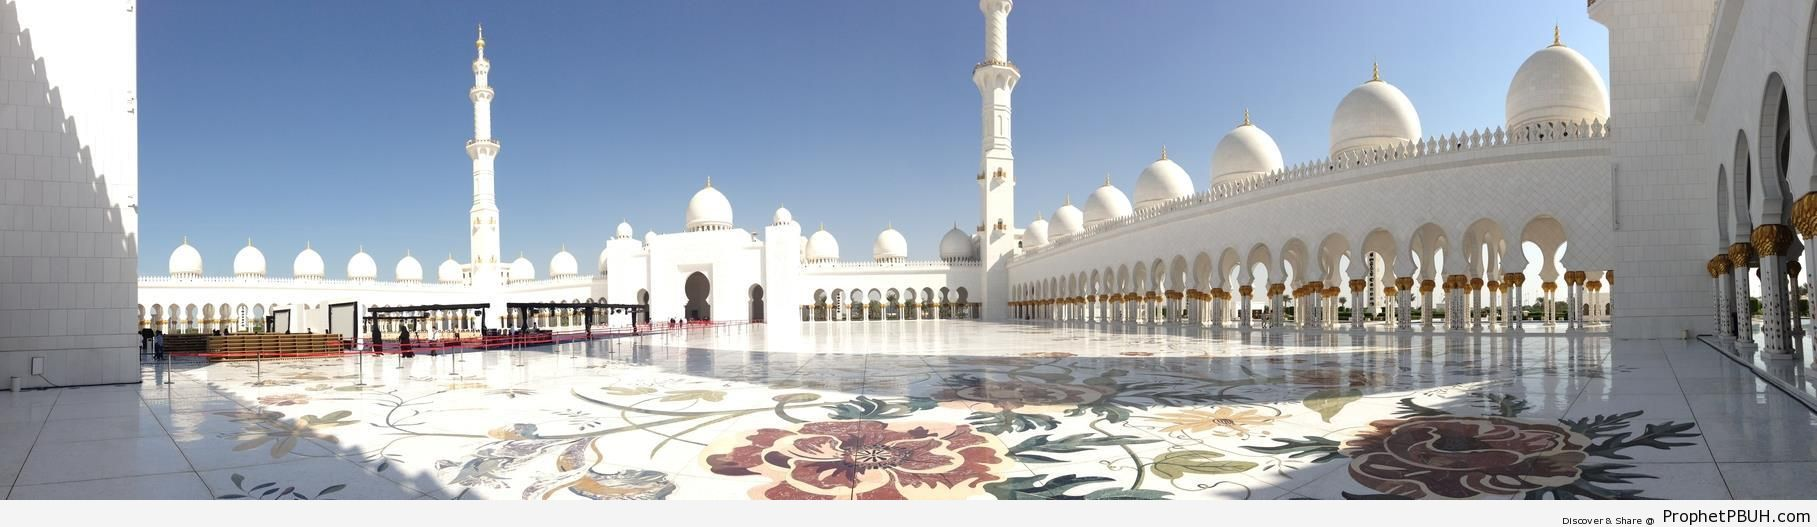 Panorama of Sheikh Zayed Grand Mosque (Abu Dhabi, UAE) - Abu Dhabi, United Arab Emirates